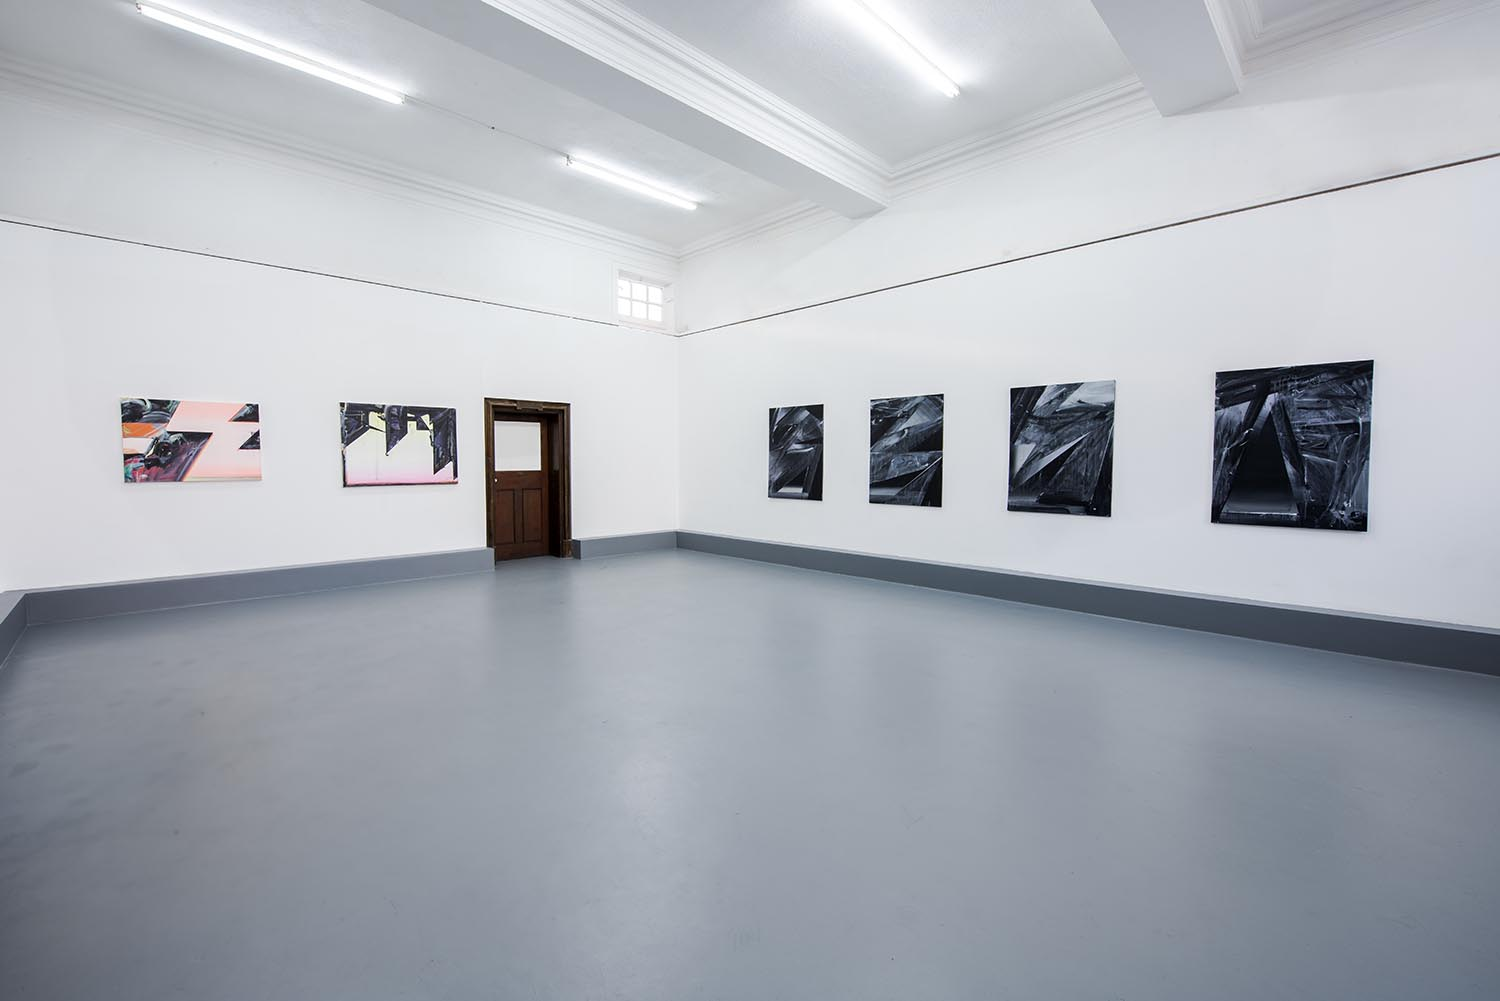 Phil Ashcroft, Cave Paintings, installation view, 2015. Photo: Tom Horak